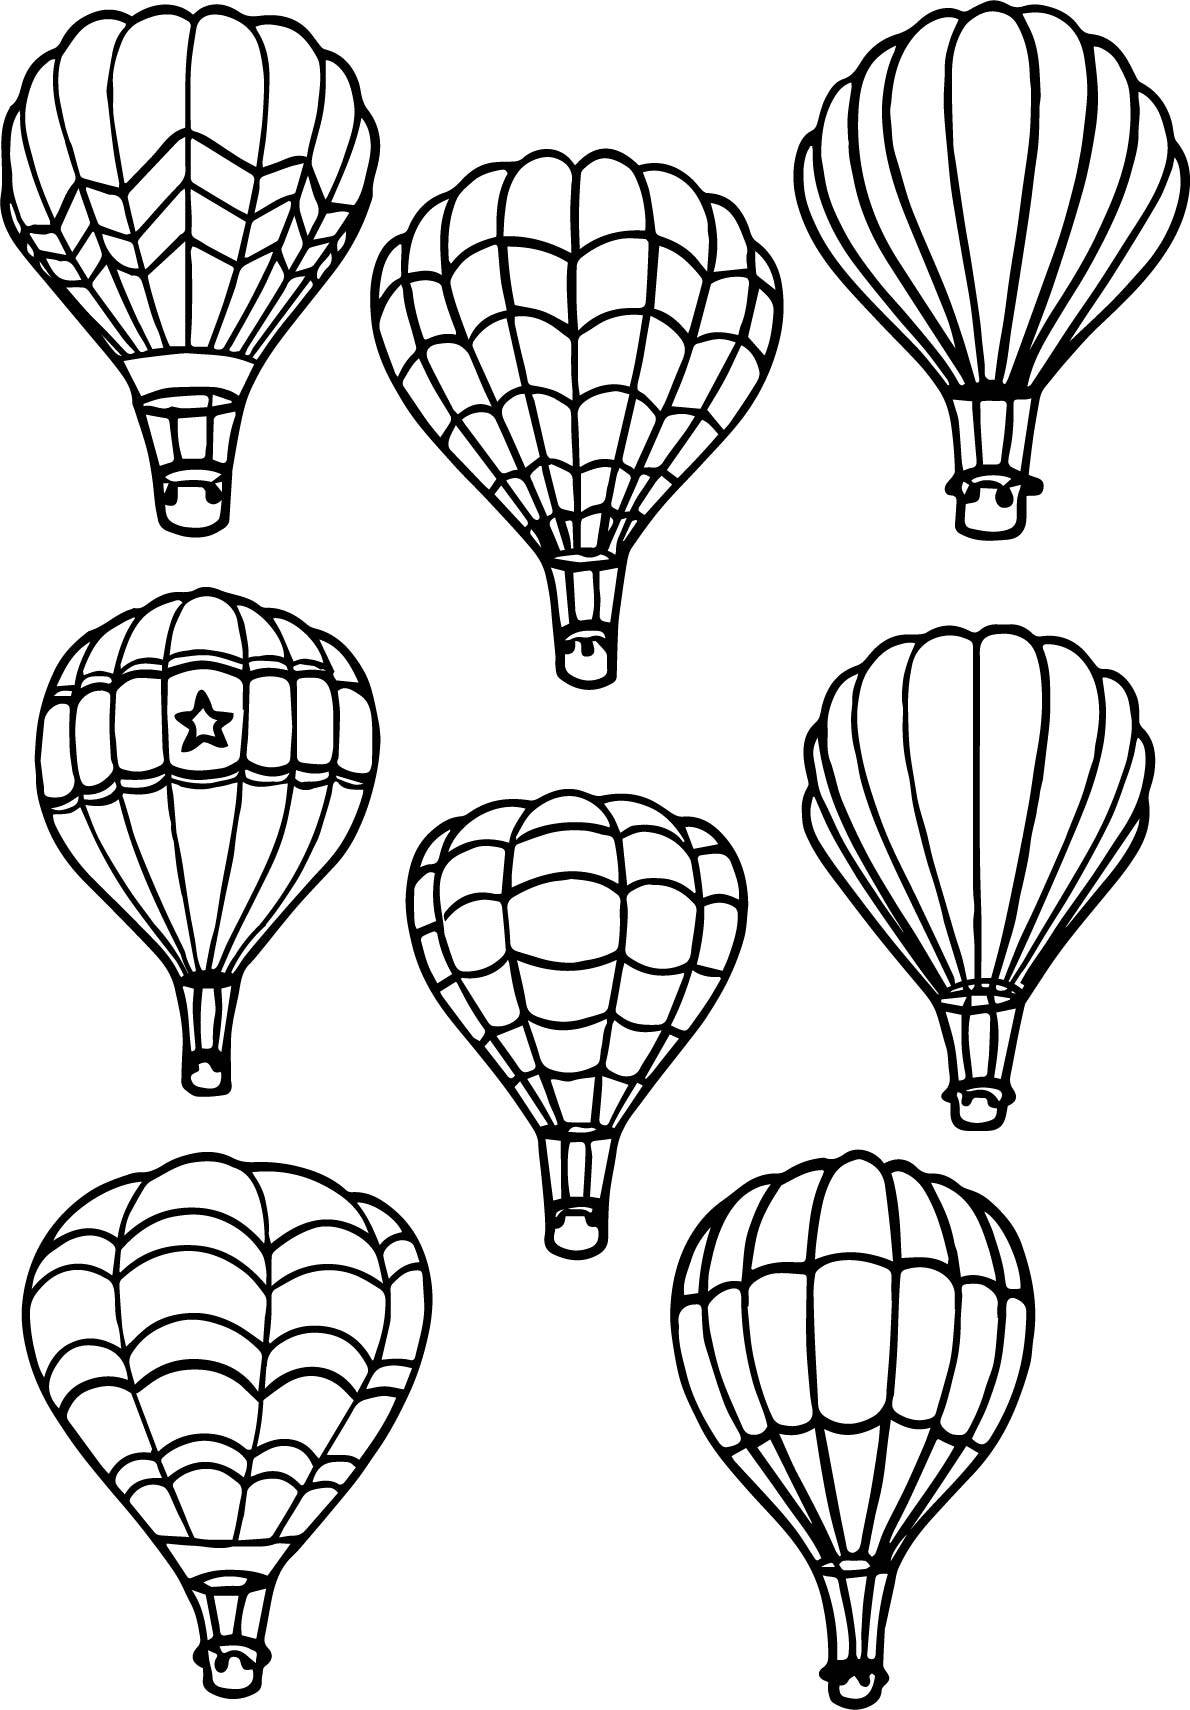 hot air balloon coloring pages vacation on hot air balloon coloring pages coloring sky pages coloring balloon hot air